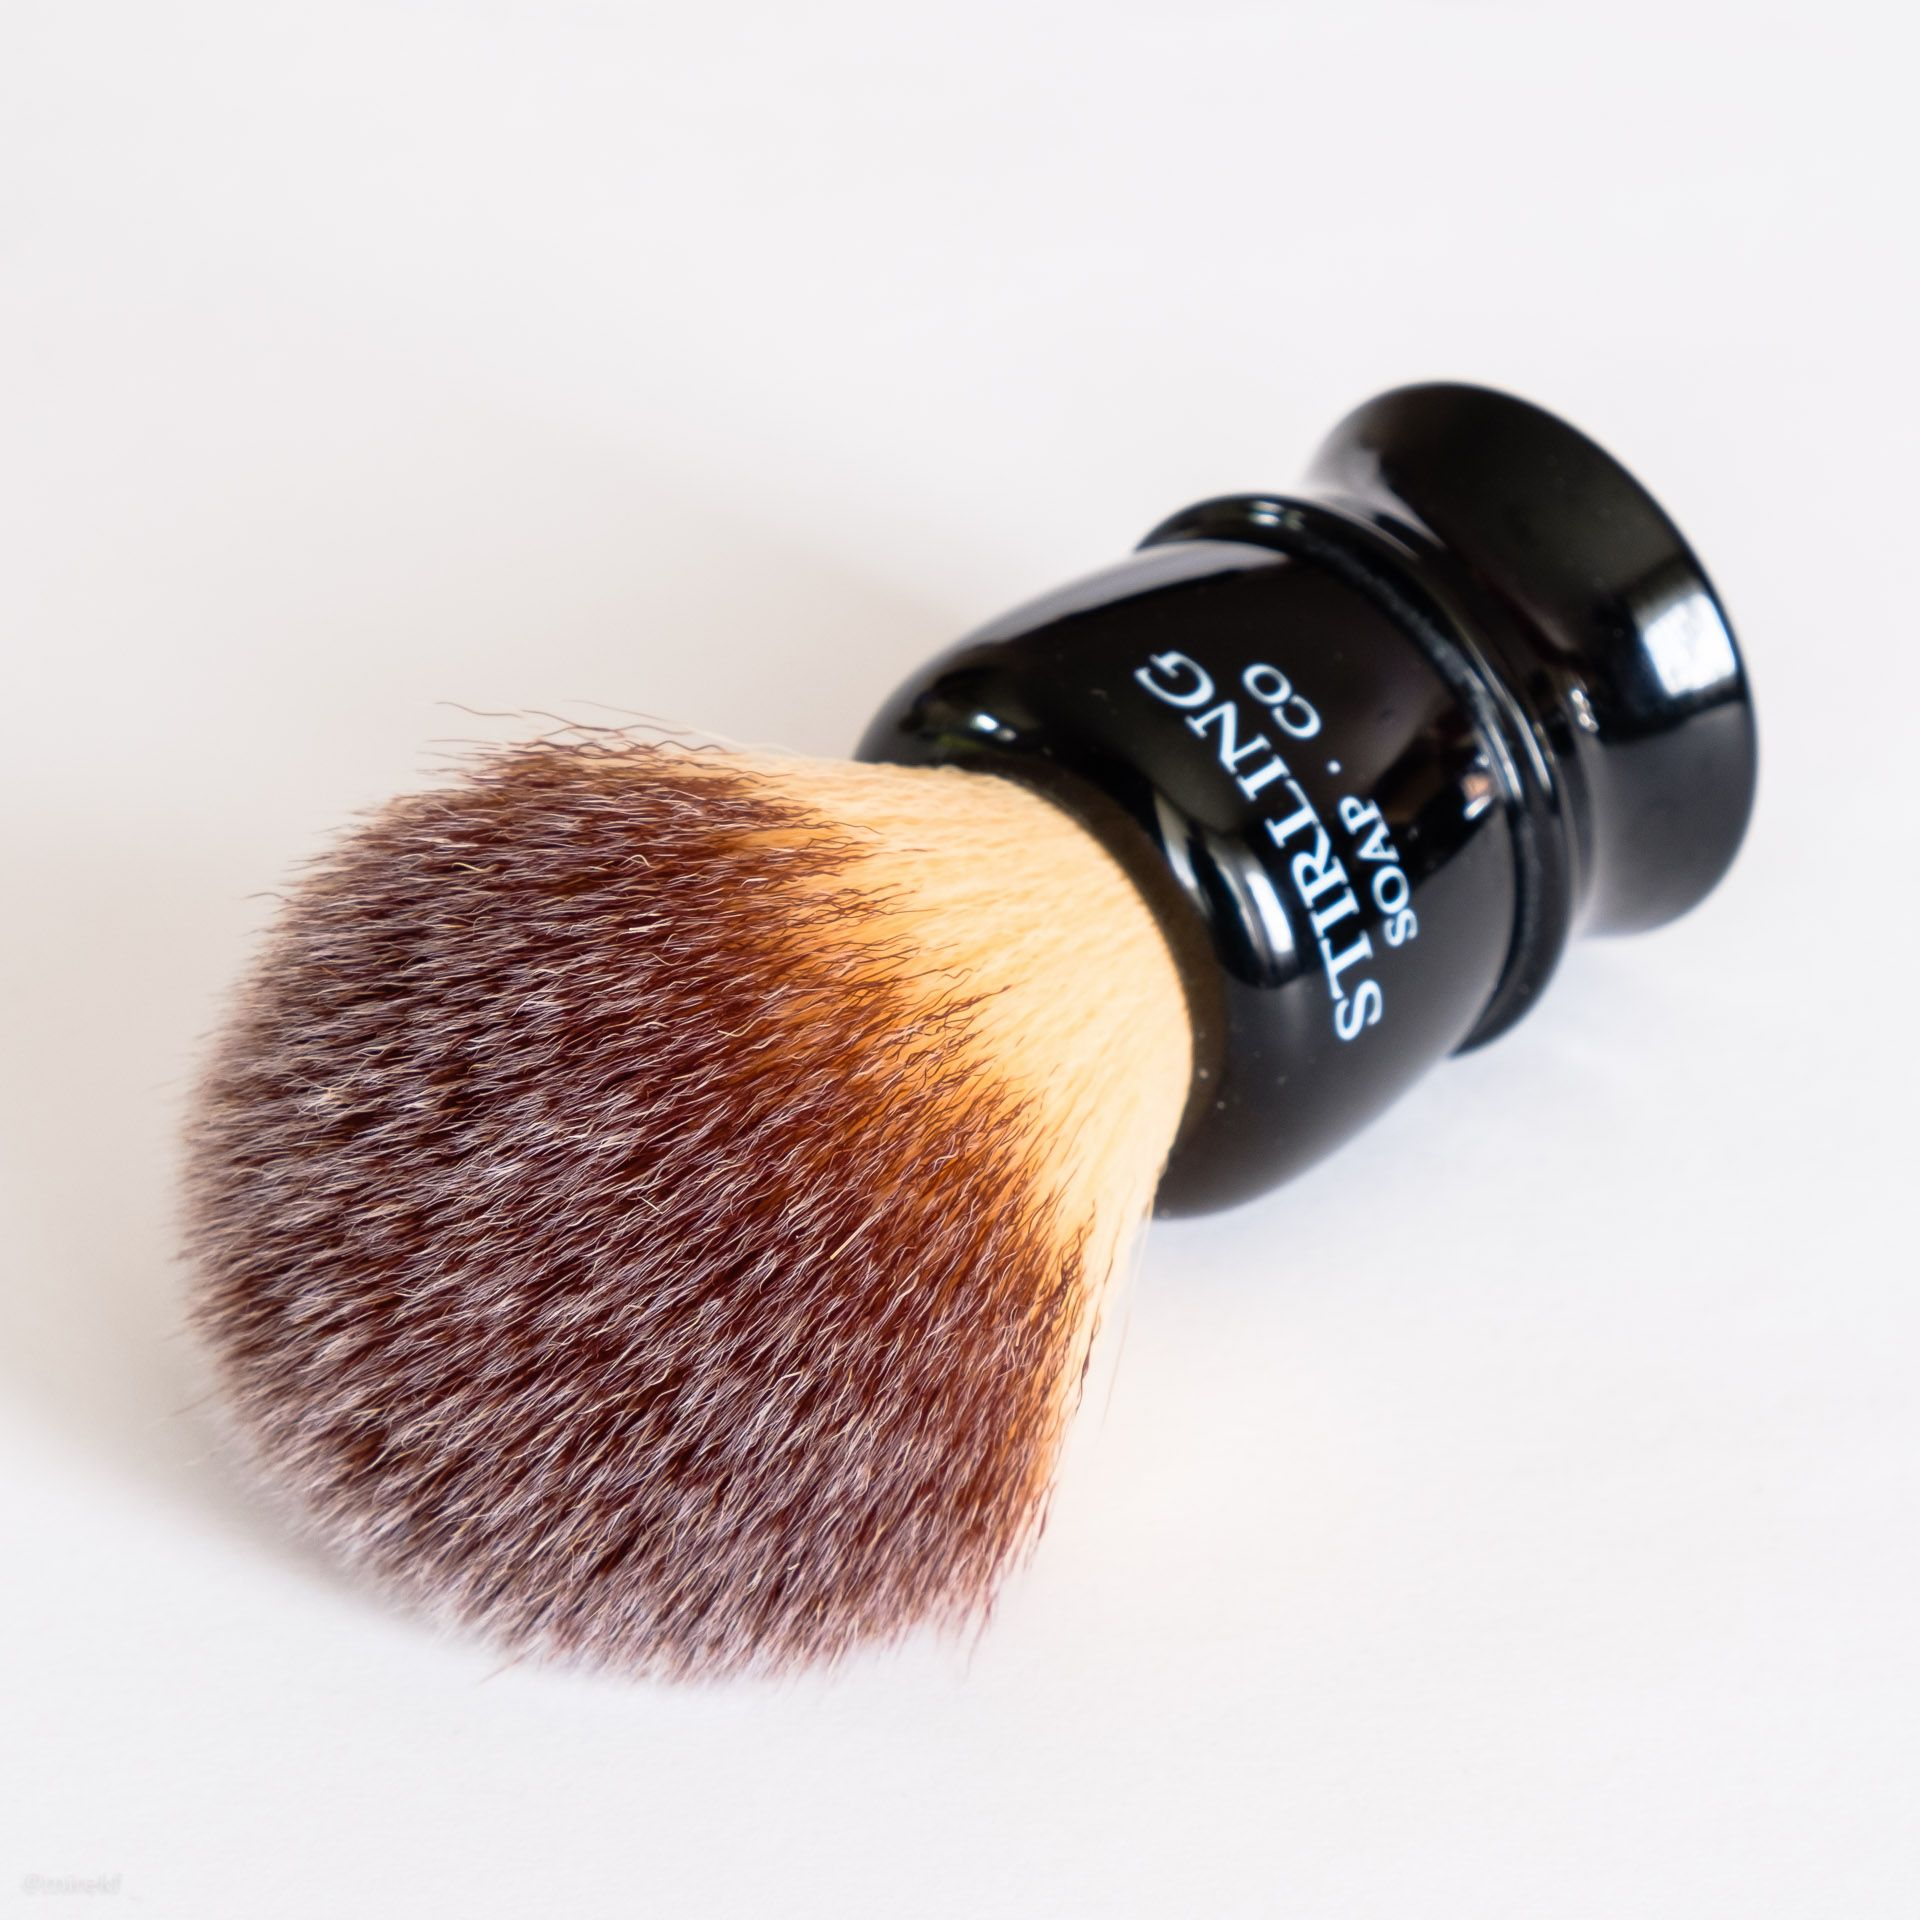 Pędzel do golenia Stirling Synthetic Shave Brush 22 mm (Li'l Brudder)